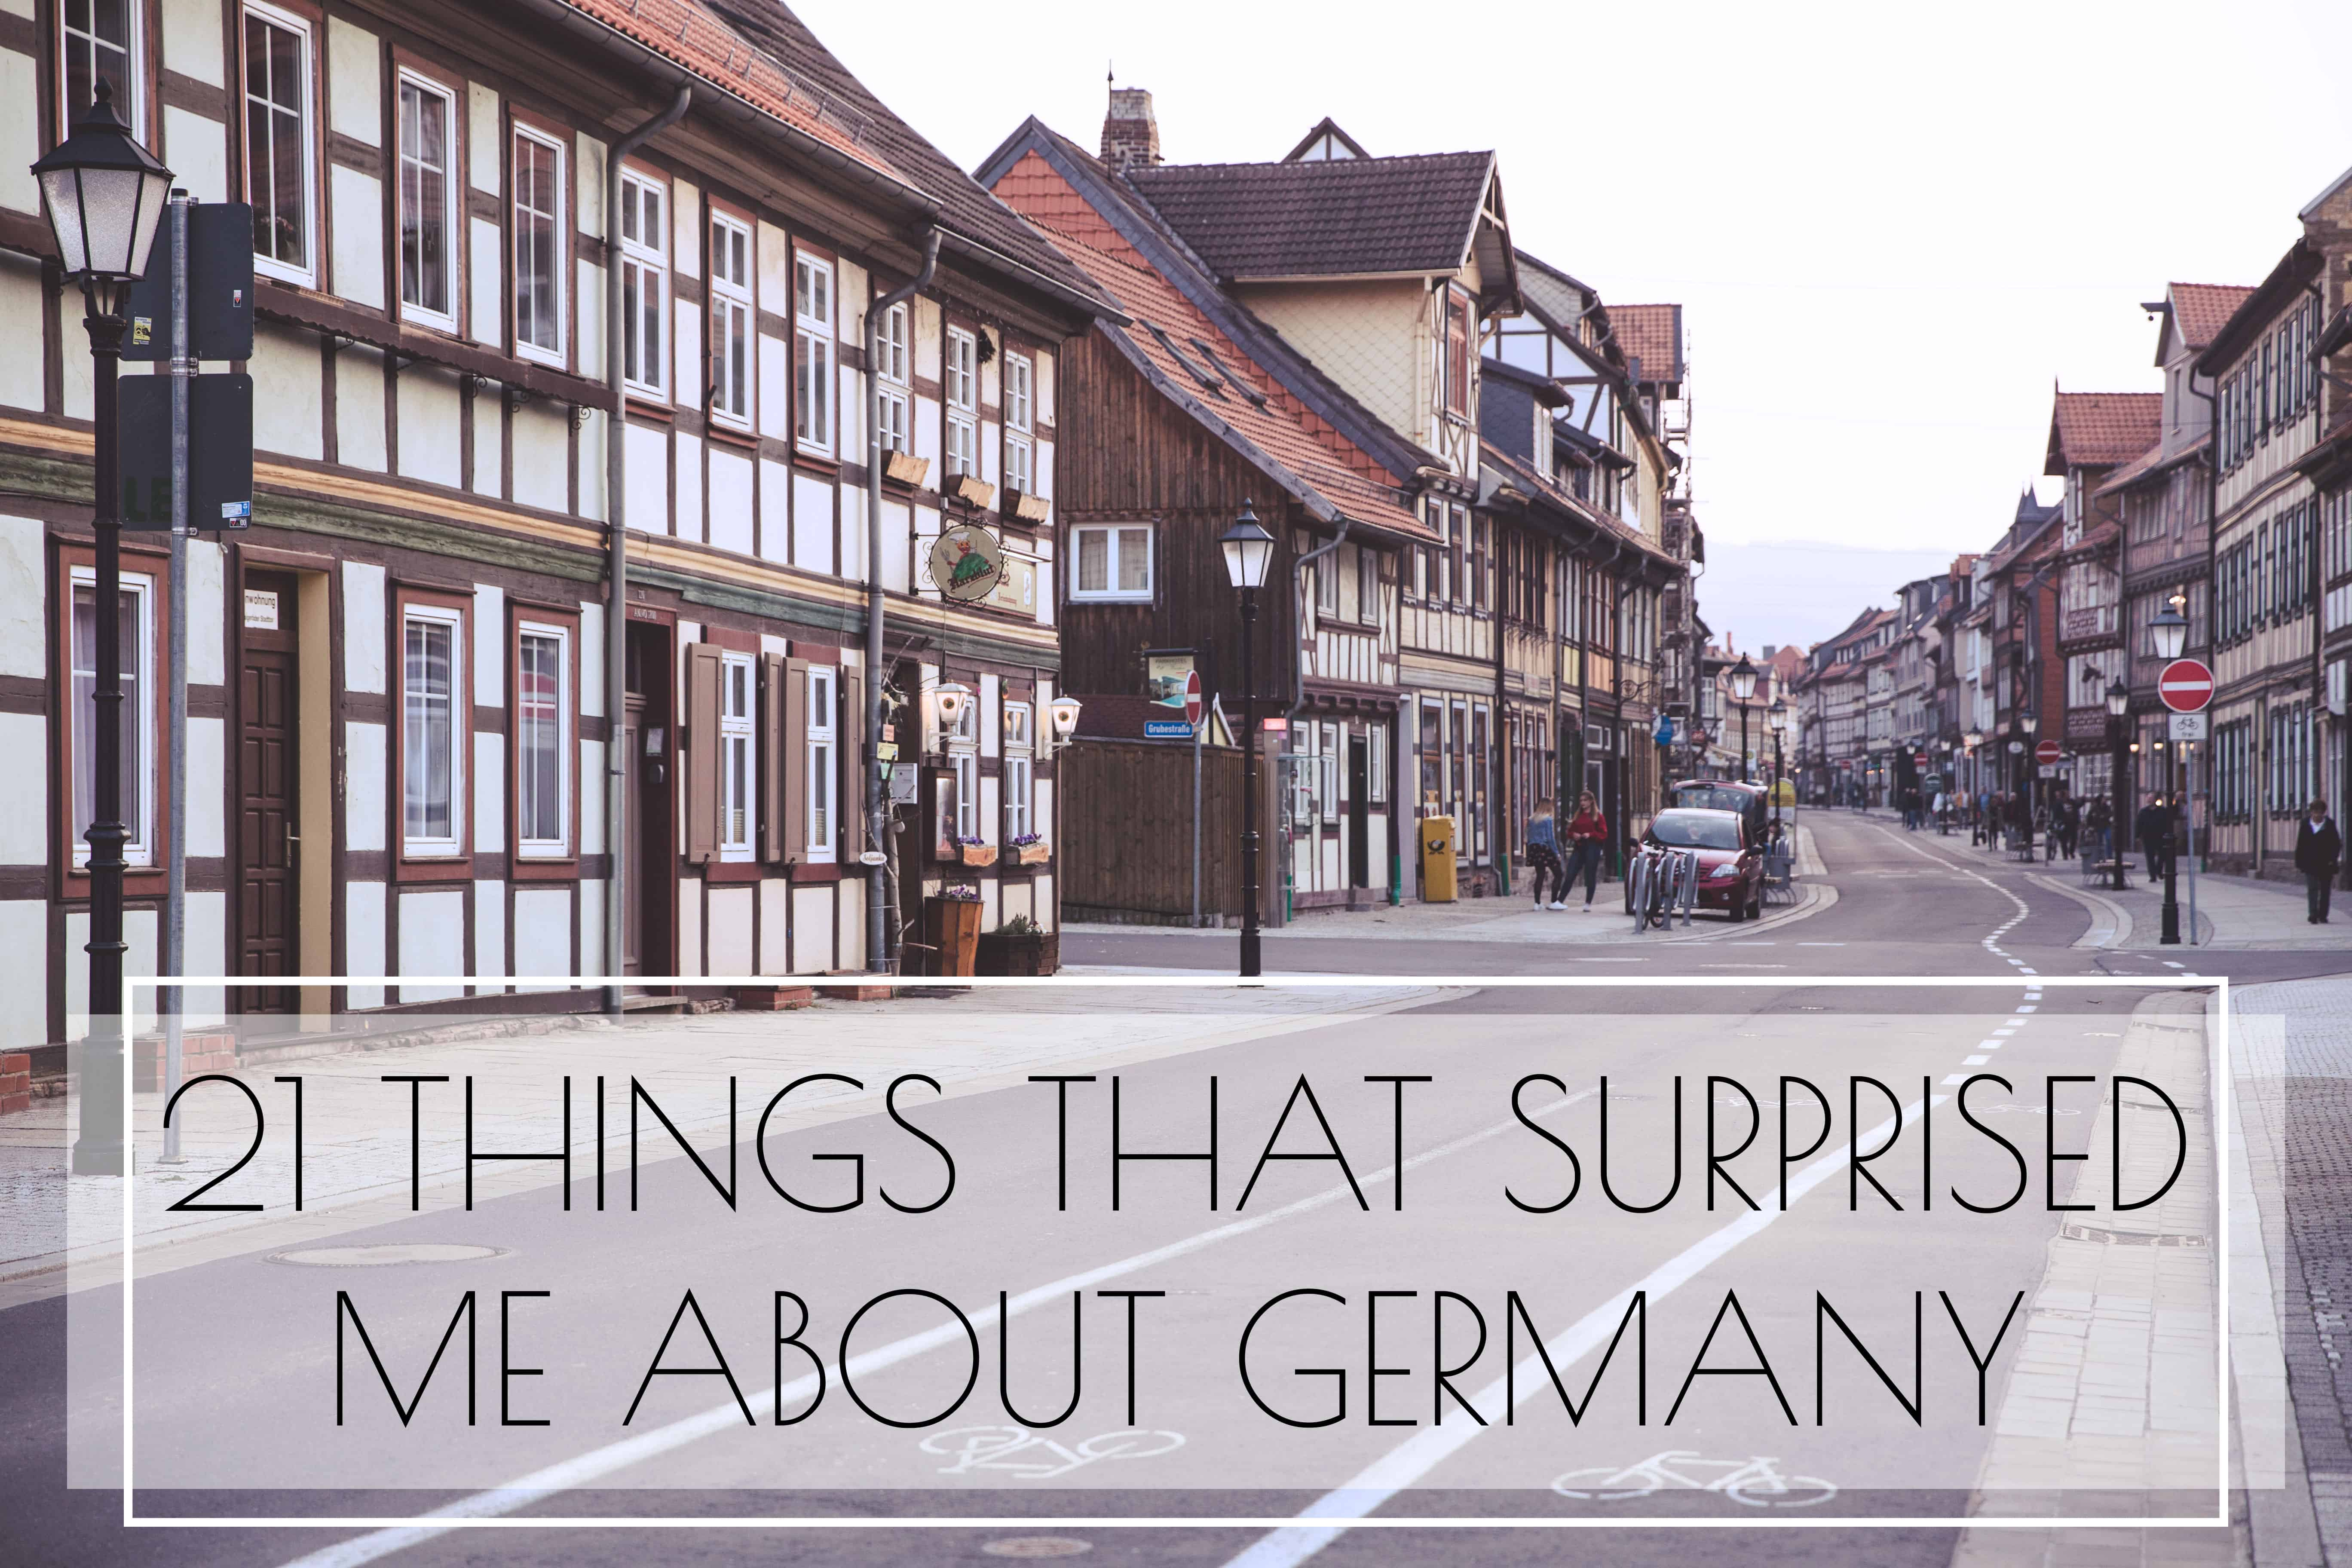 21 Things That Surprised Me About Germany